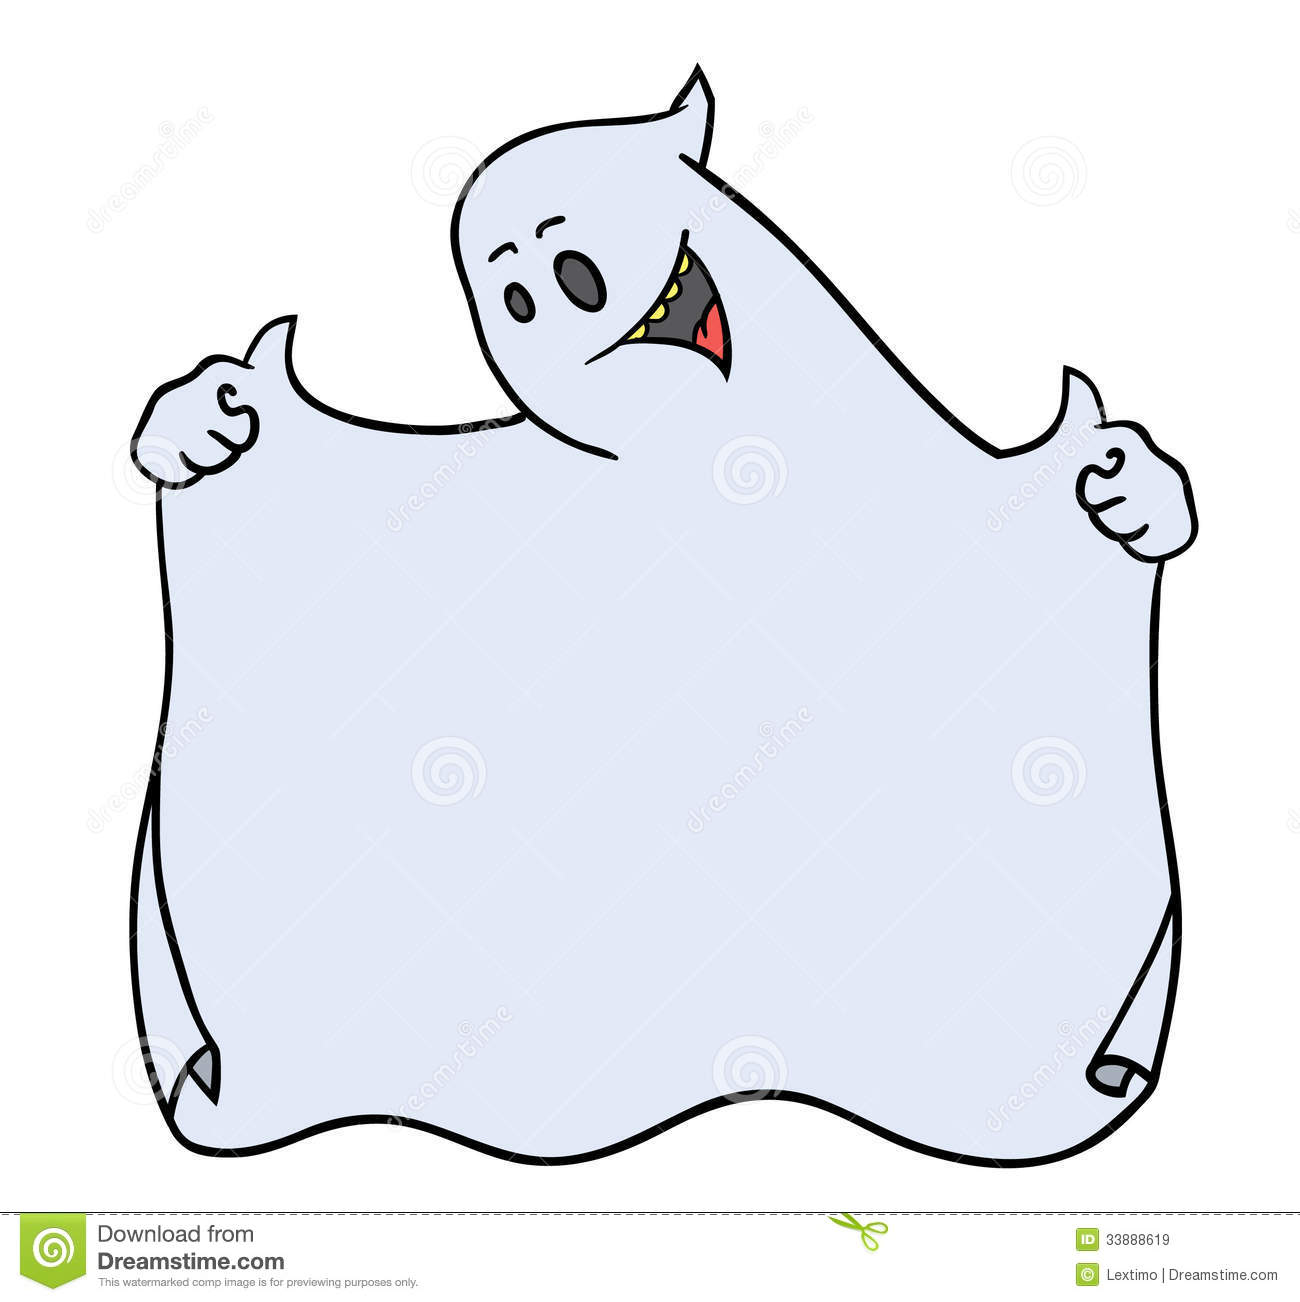 halloween ghost 002 royalty free stock images image 33888619 clip art castles on an island clip art castle flags